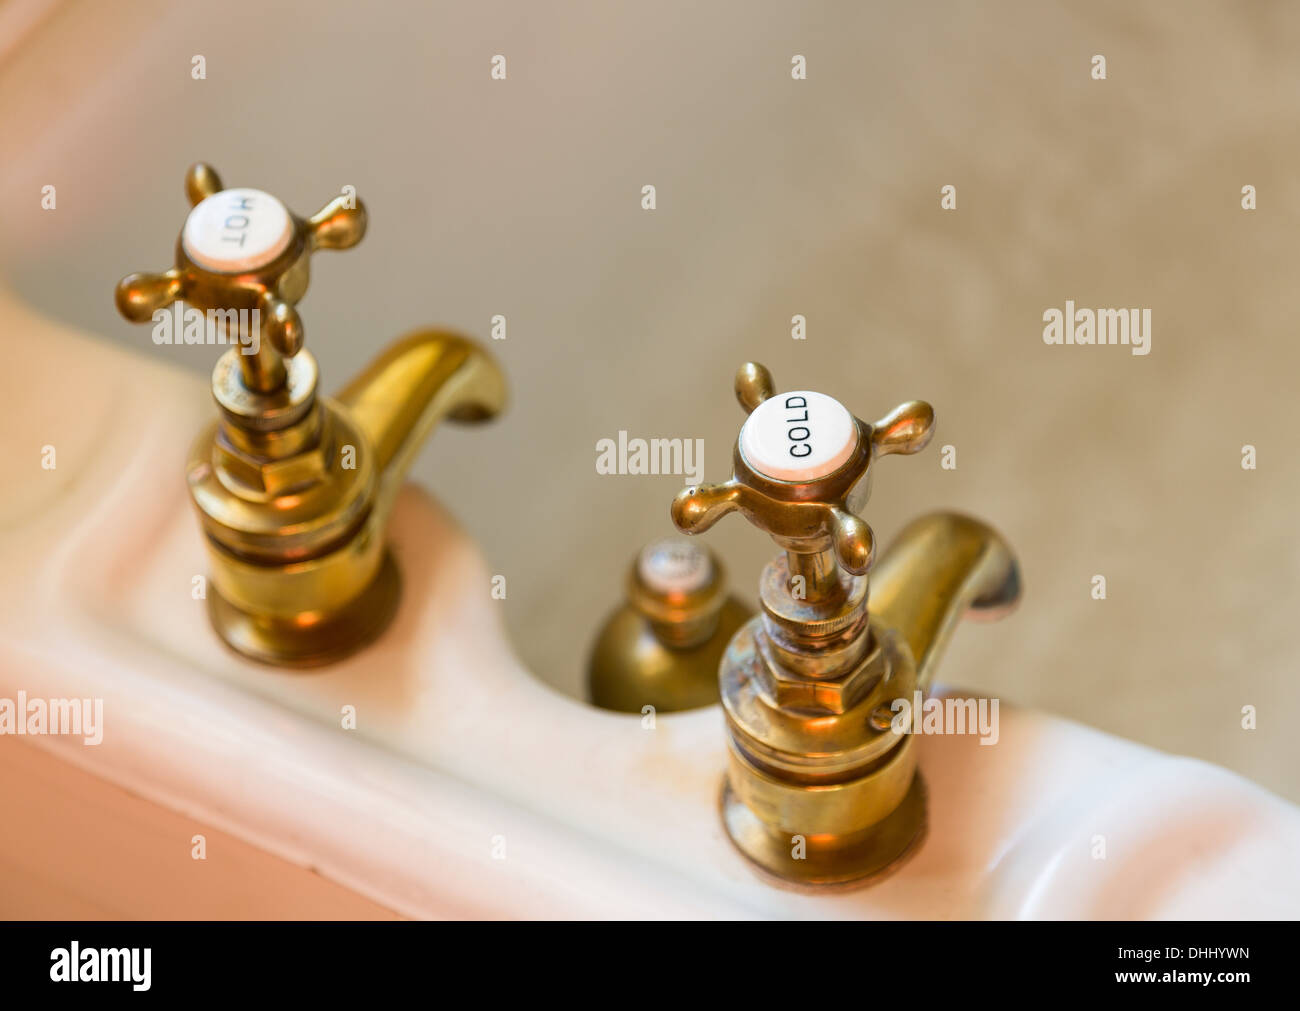 Old brass bath taps with hot and cold engraved on tops - Stock Image